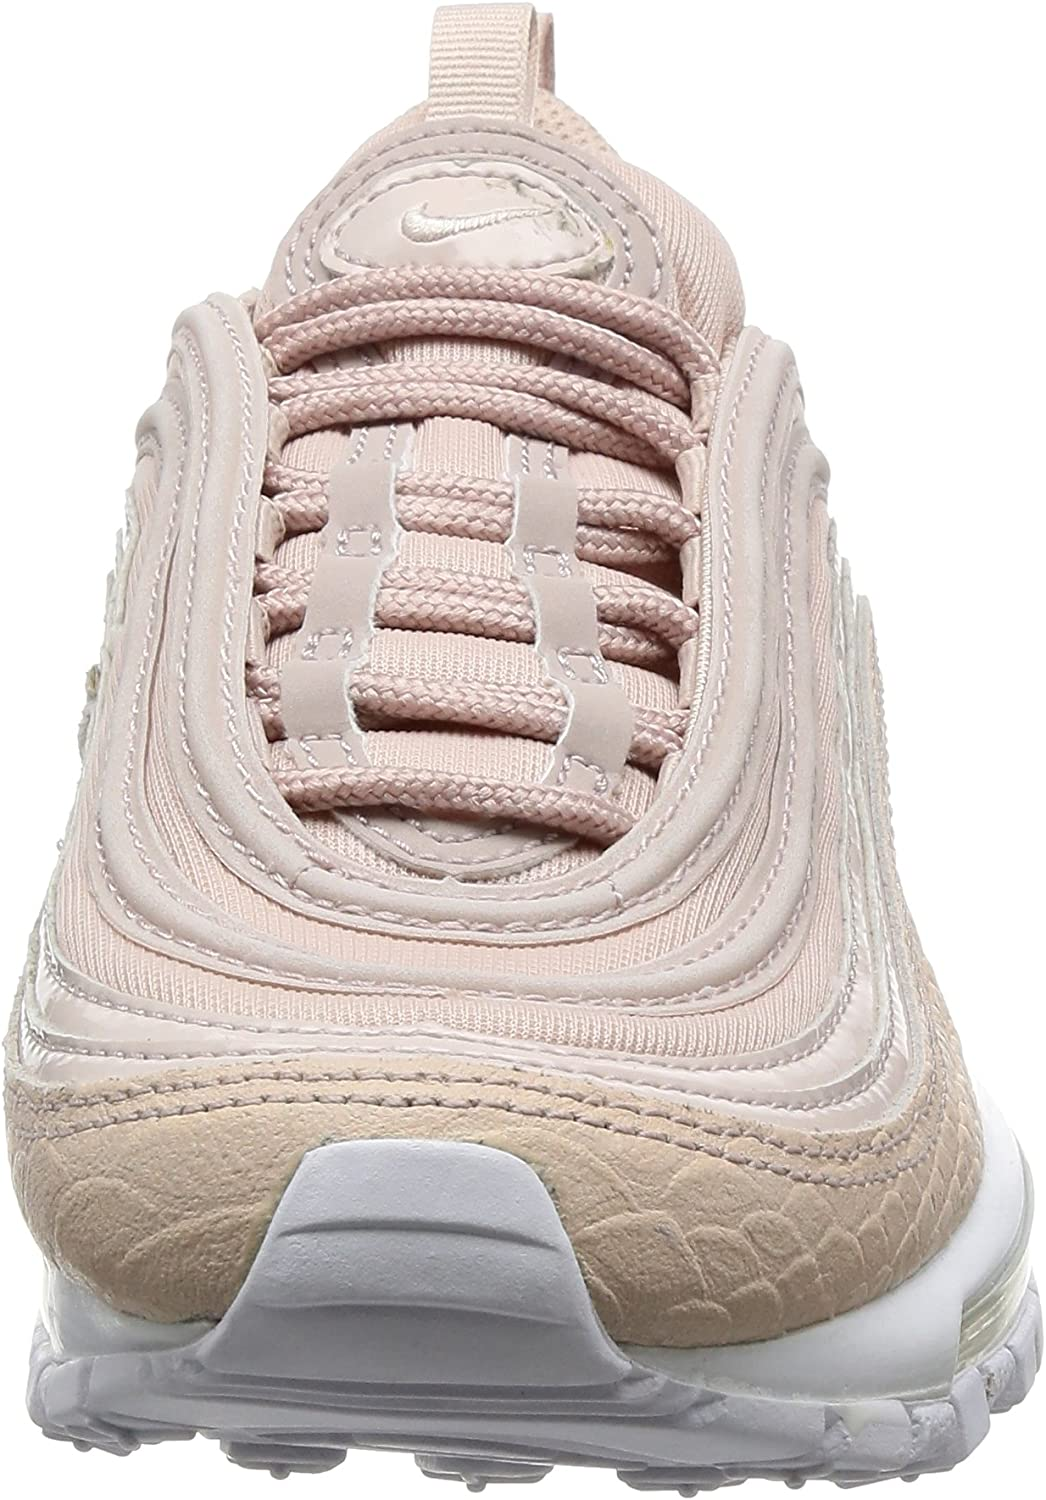 W AIR MAX 97 PRM 'PINK SCALES' 917646 600 SIZE 9: Amazon